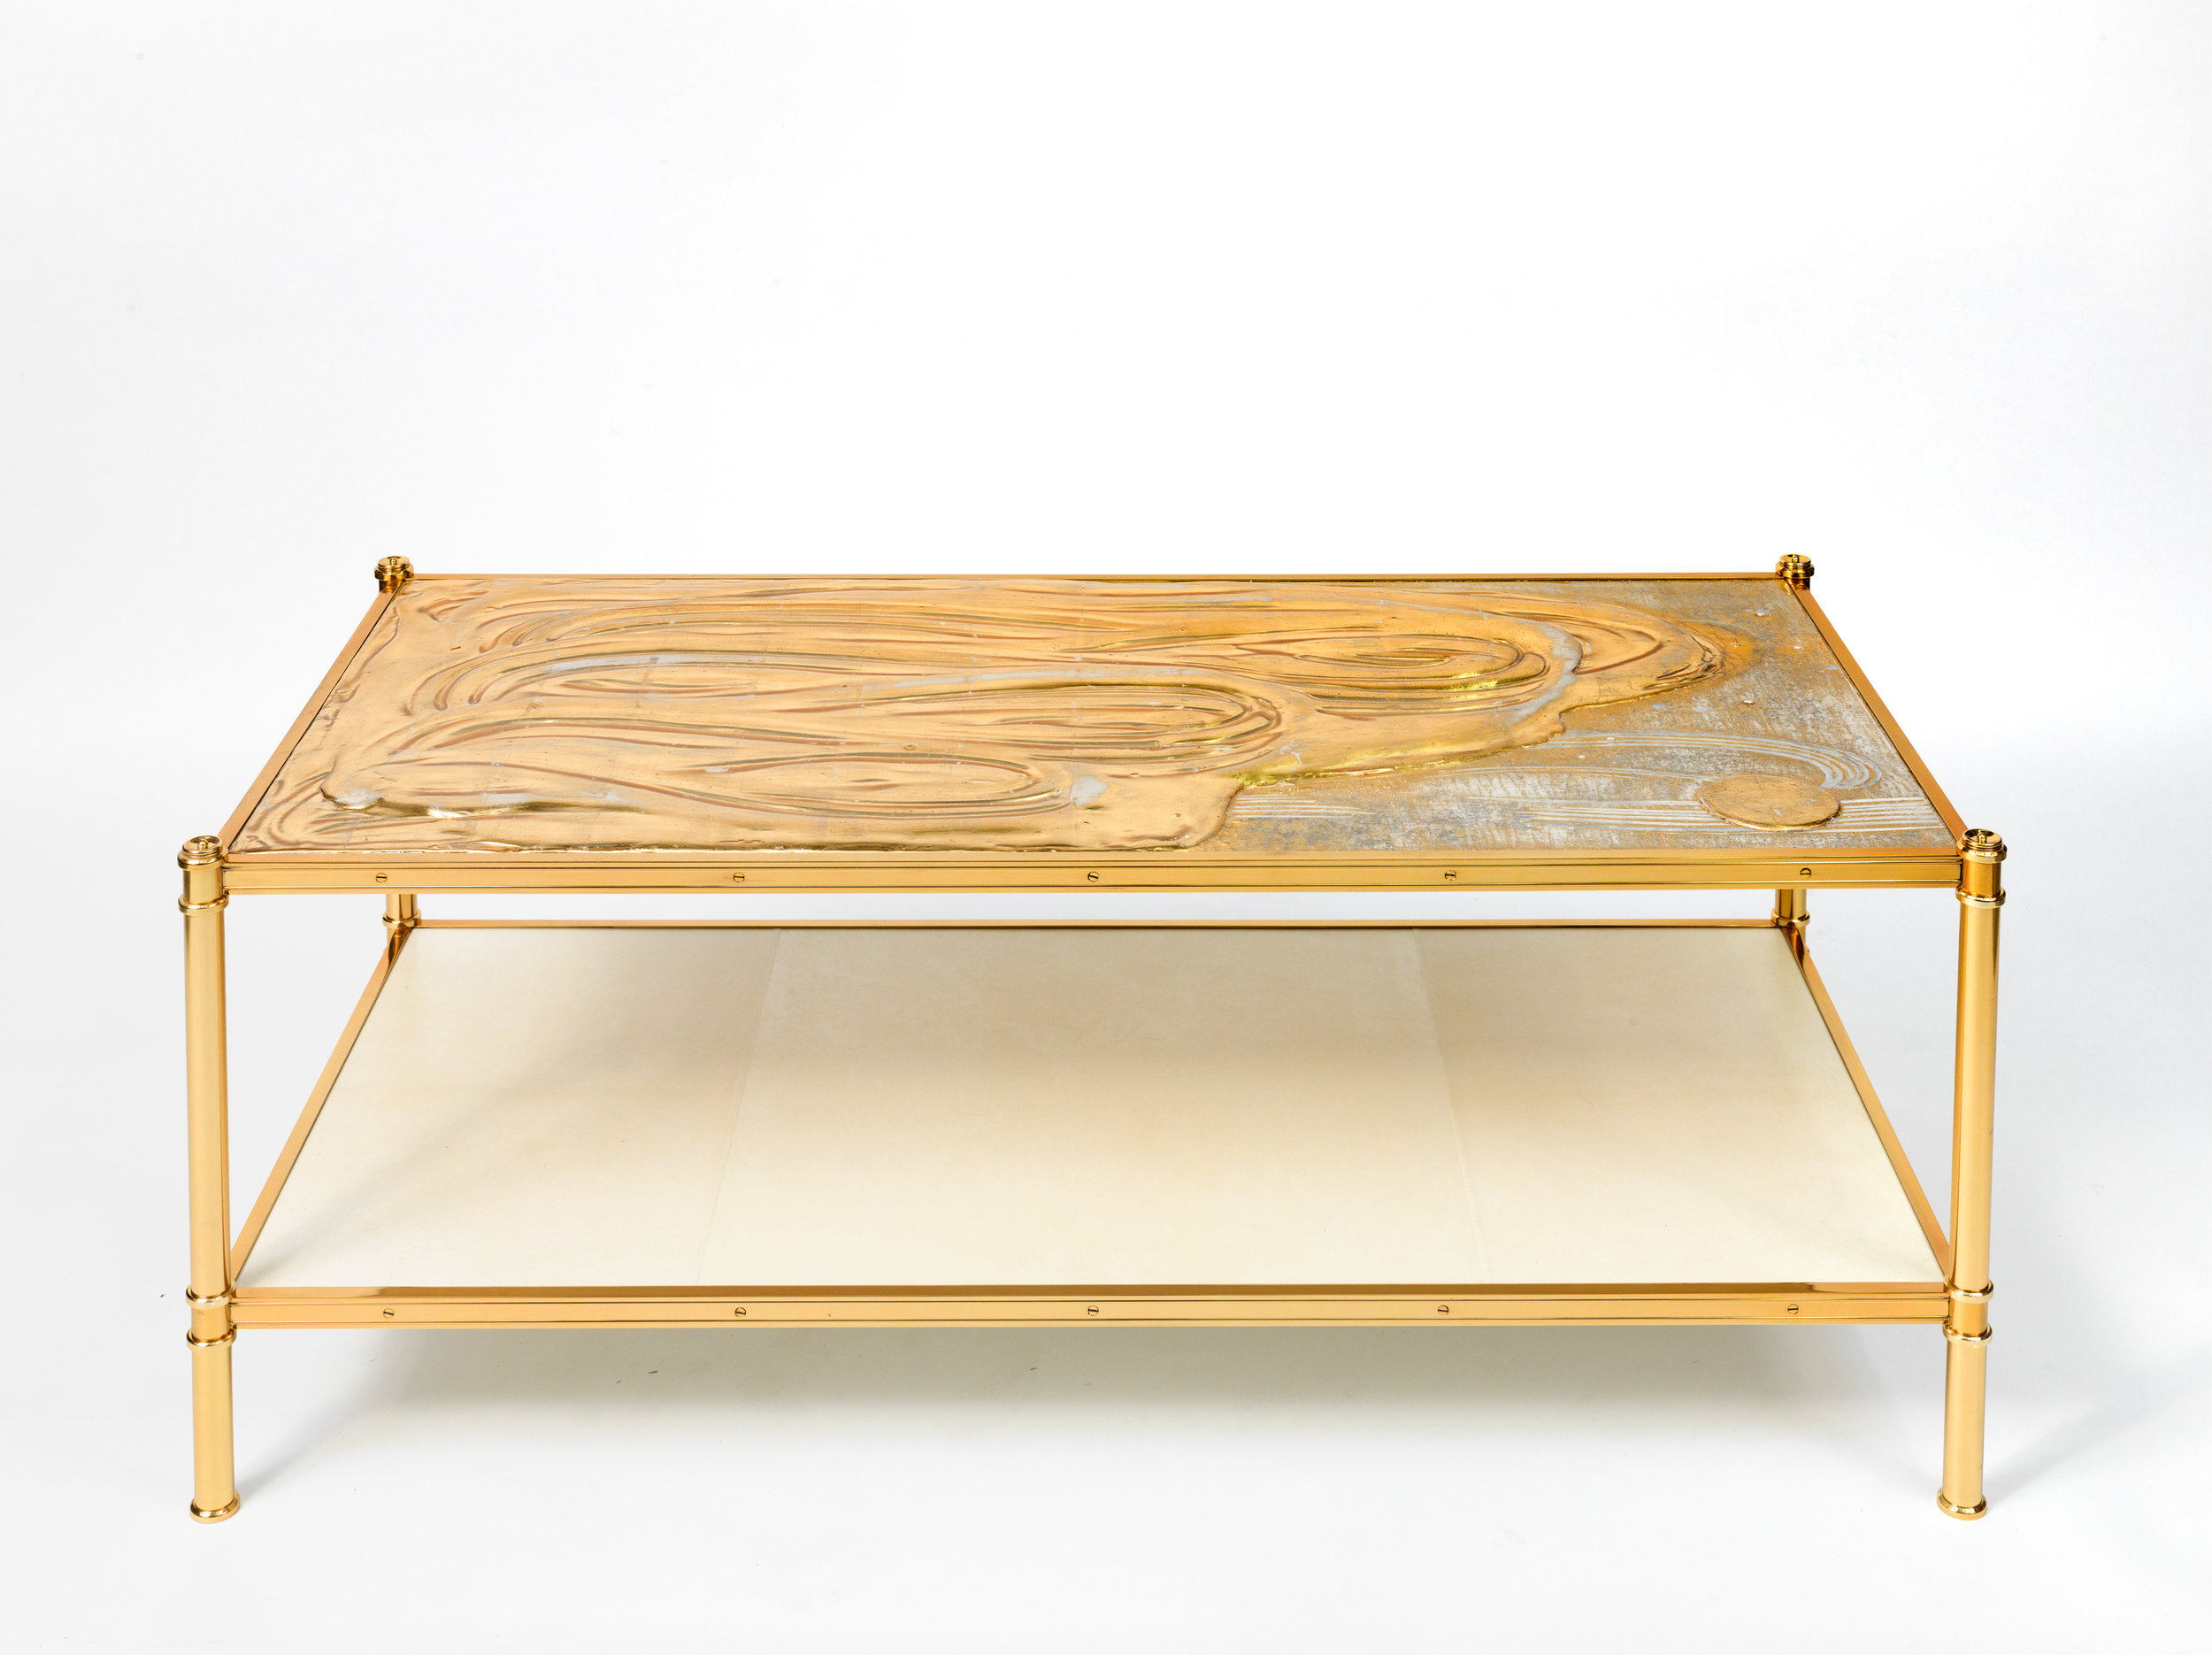 One of a pair of Cole Porter coffee tables by Victoria & Son for Alex Papachristidis featuring the work of Nancy Lorenz